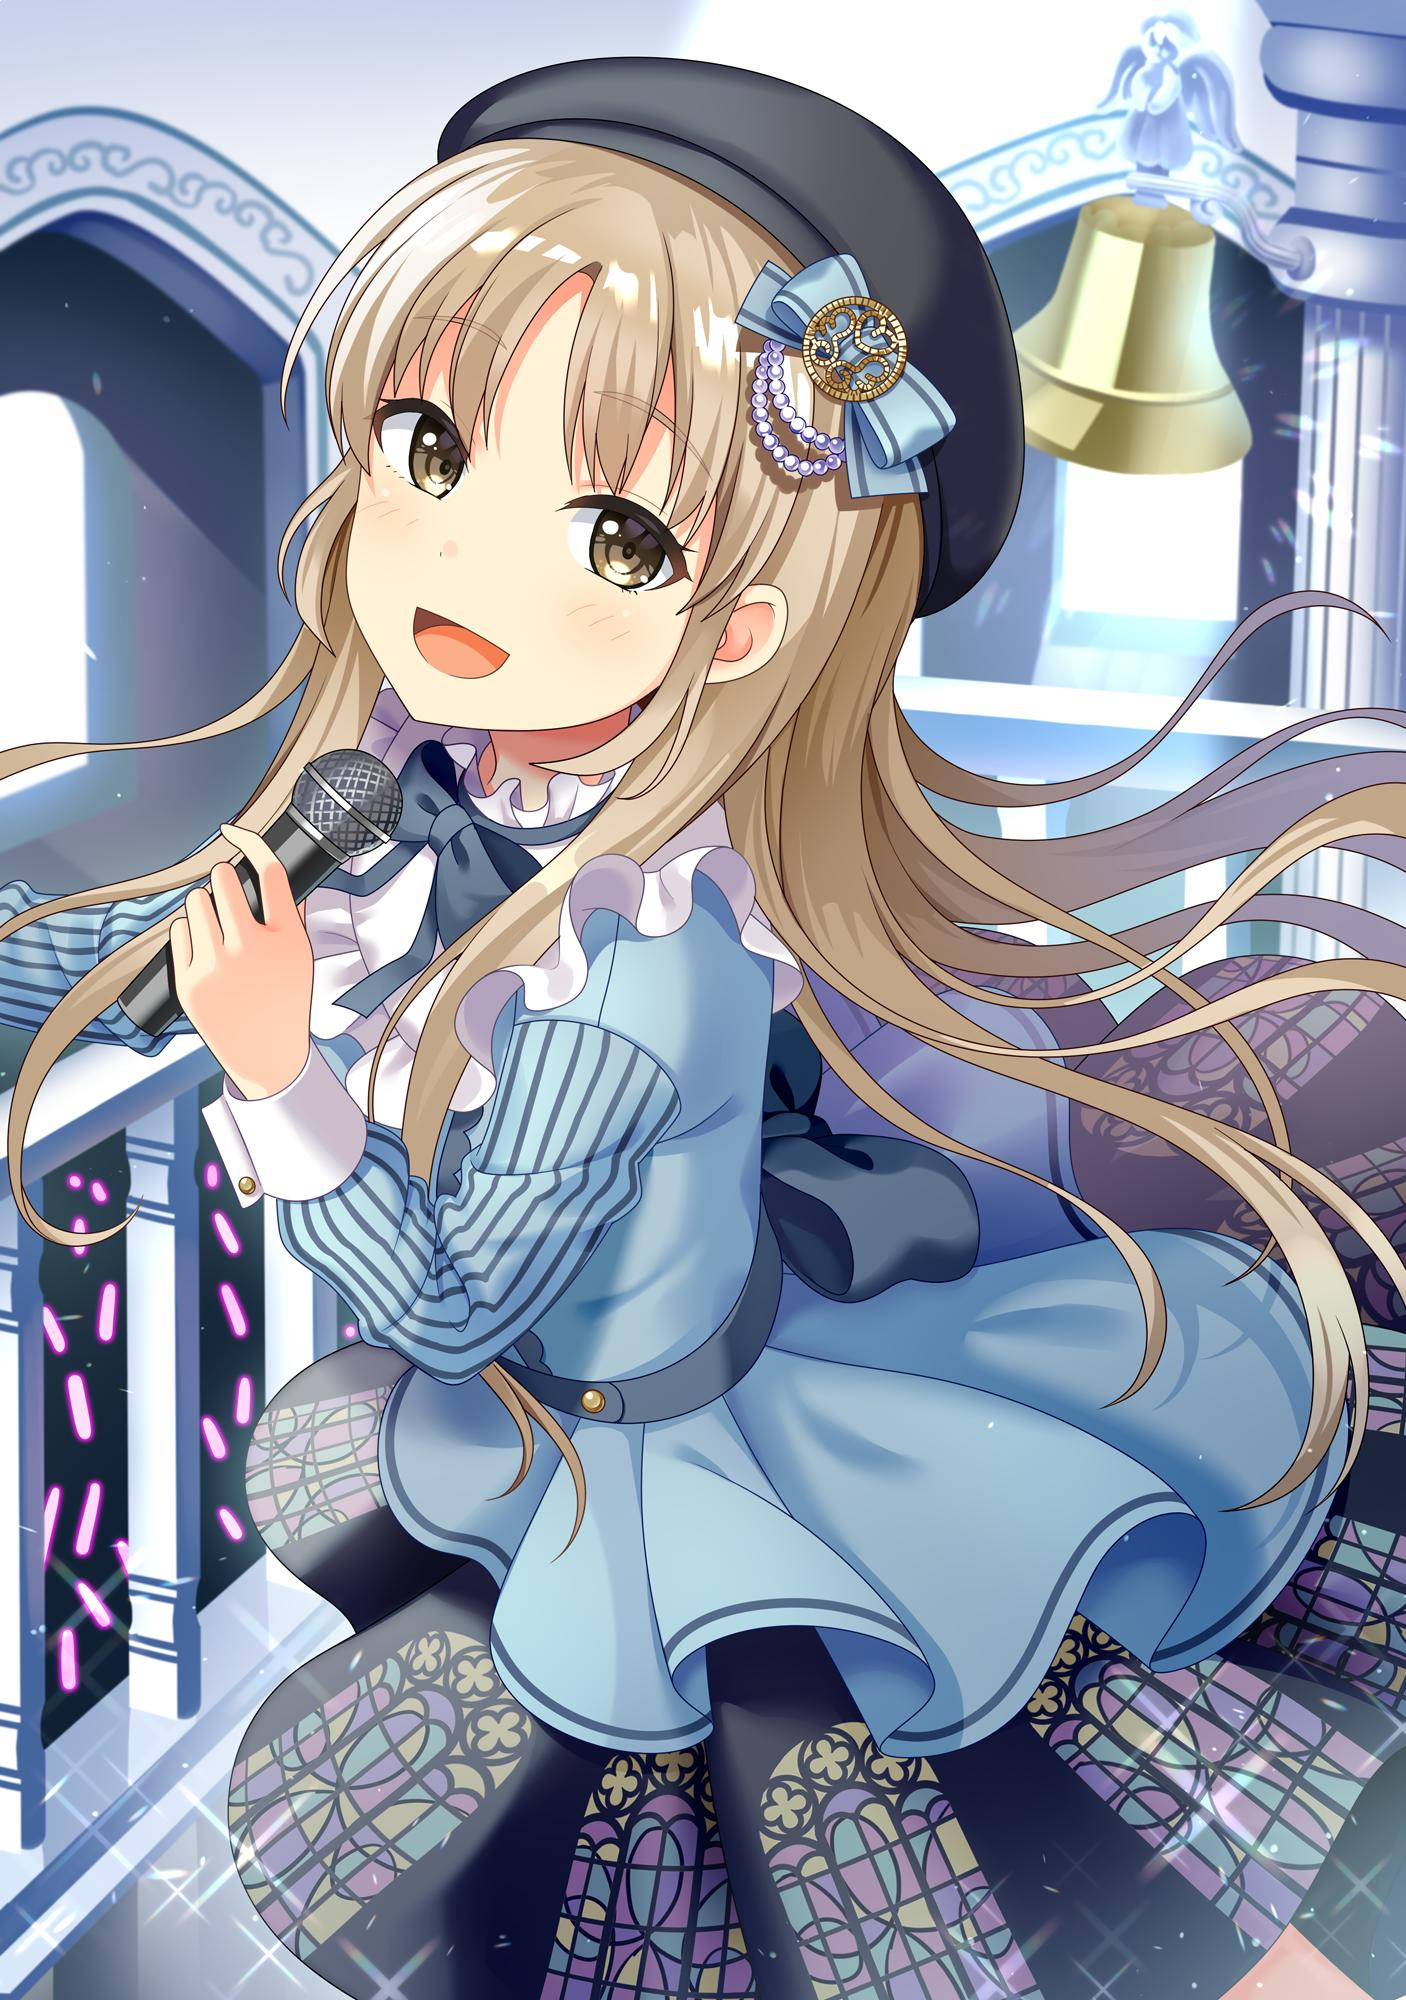 1girl bell black_headwear blush brown_eyes church_bell concert glowstick highres holding holding_microphone idol idol_clothes light_brown_hair long_hair long_sleeves looking_at_viewer microphone music nijisanji open_mouth singing sister_cleaire smile solo stage virtual_youtuber yuusa